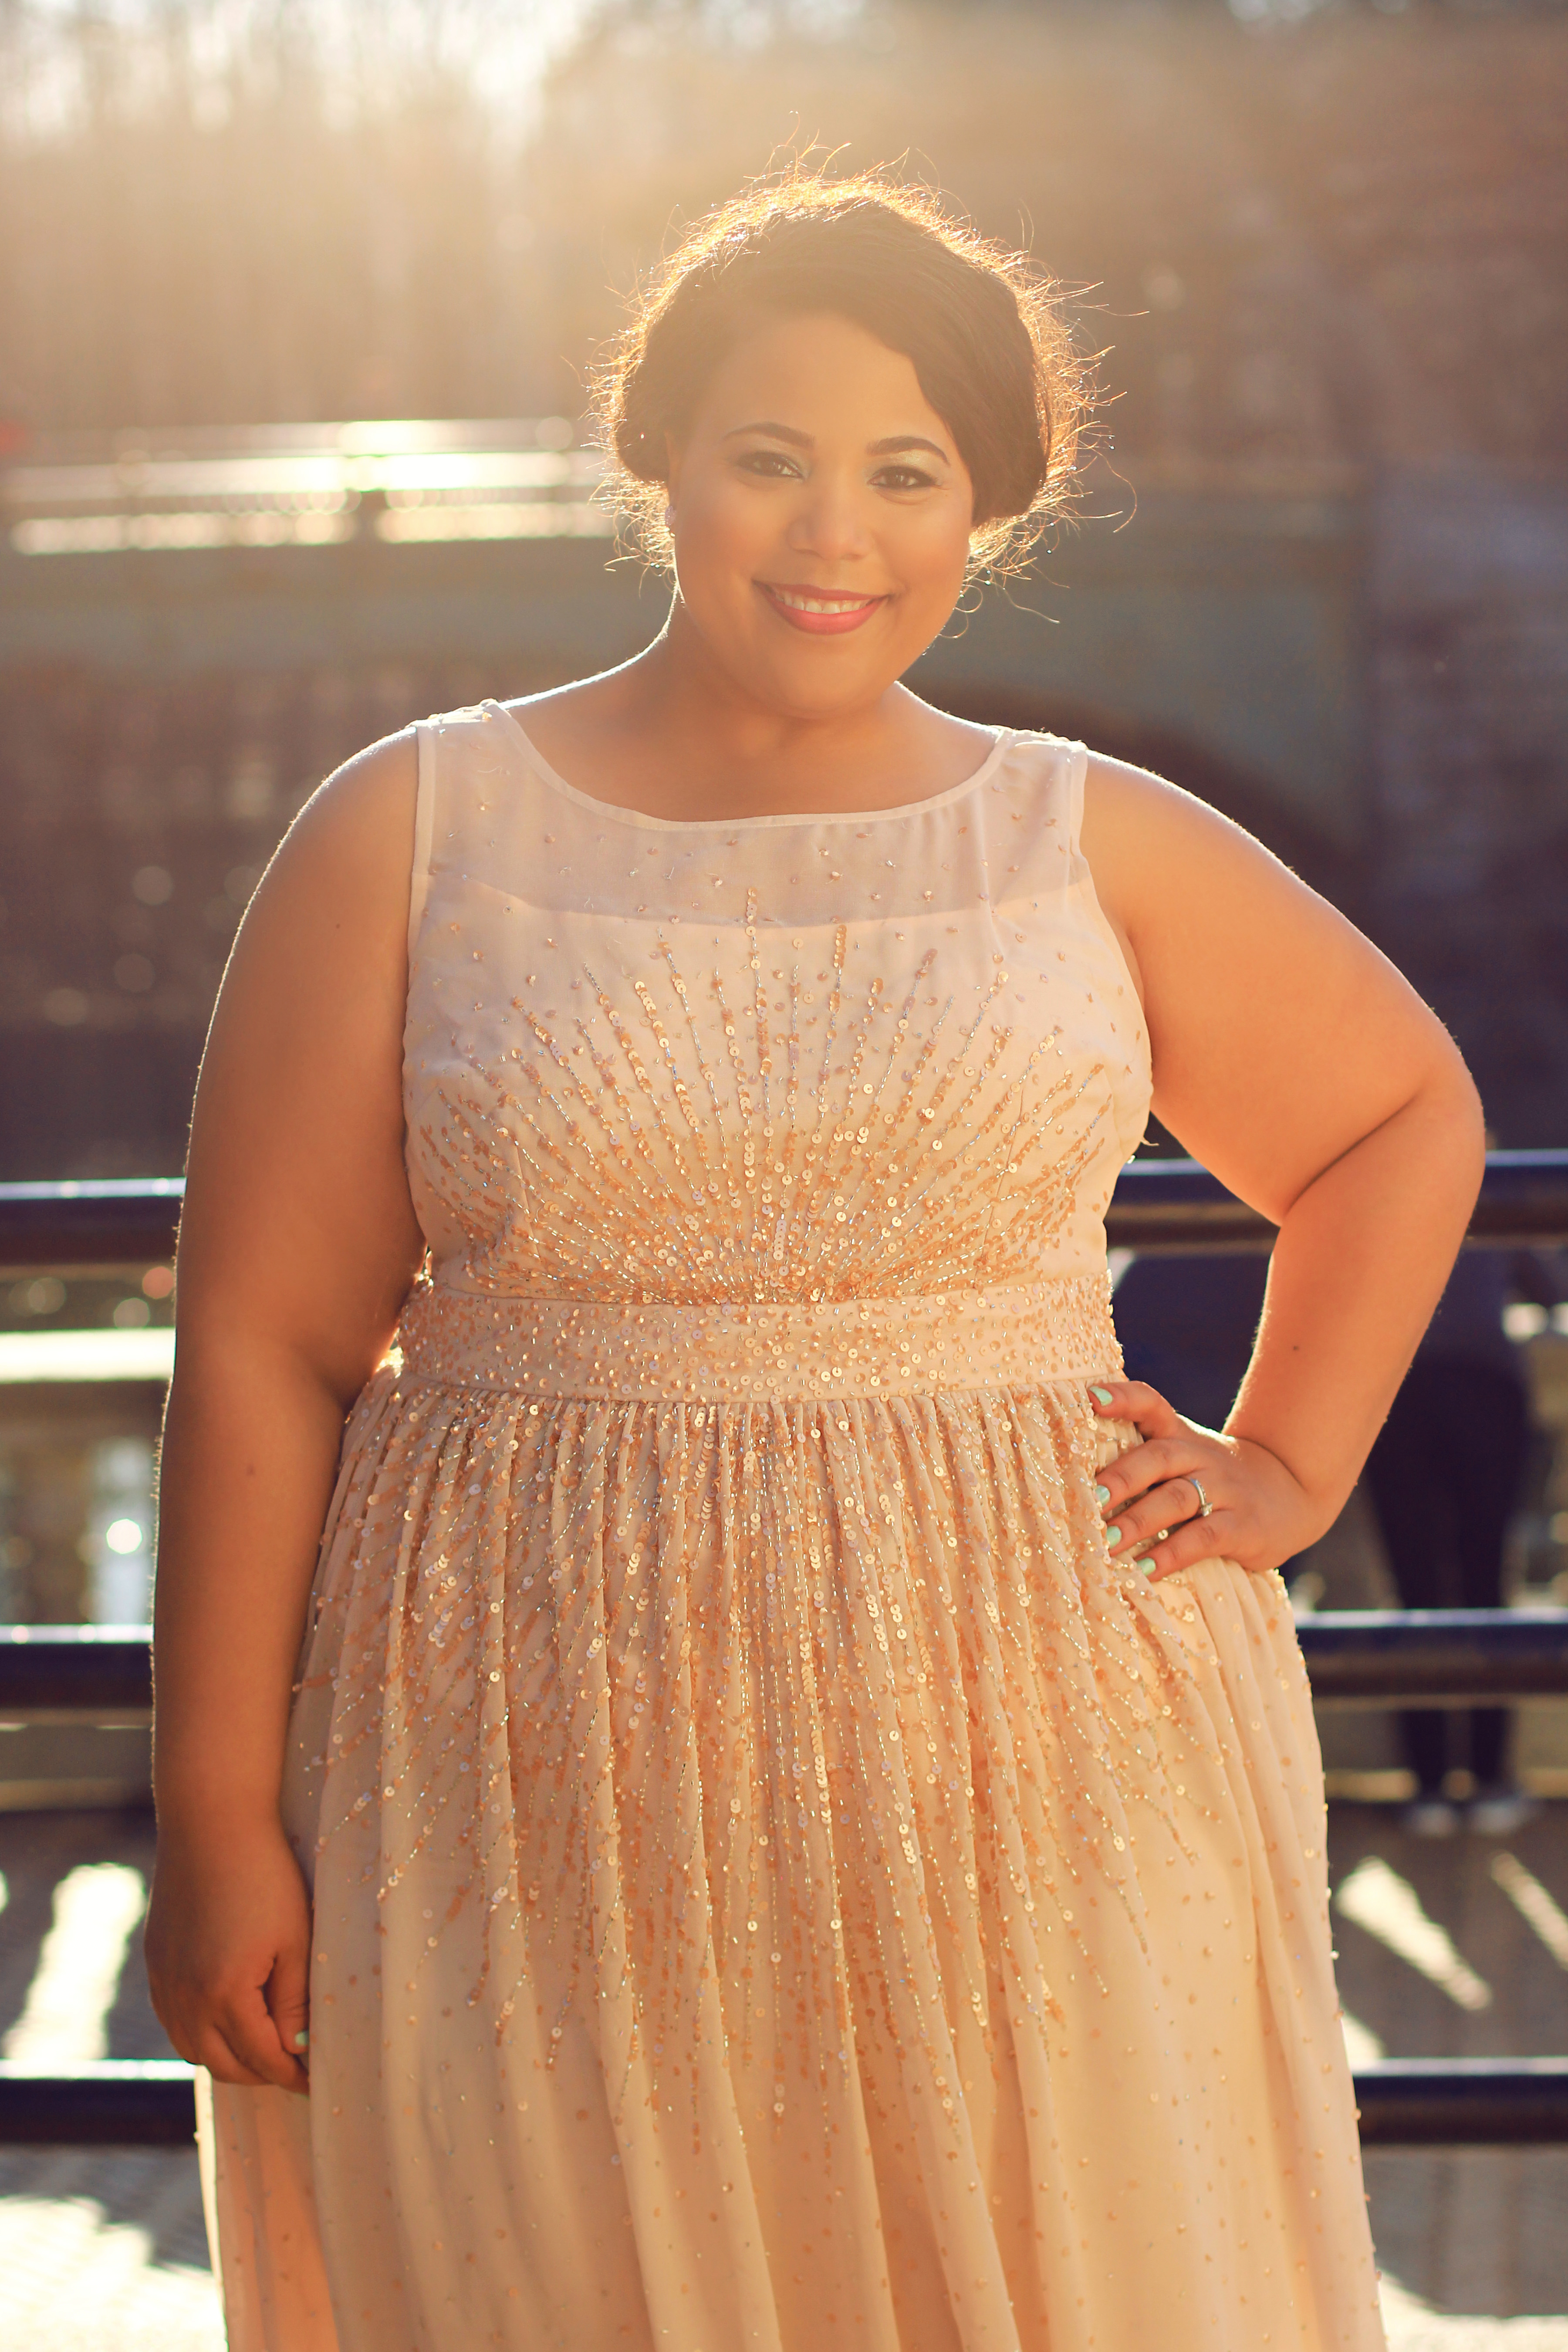 Plus Size Prom & Formal Dress Giveaway #PlusProm14 - Garnerstyle